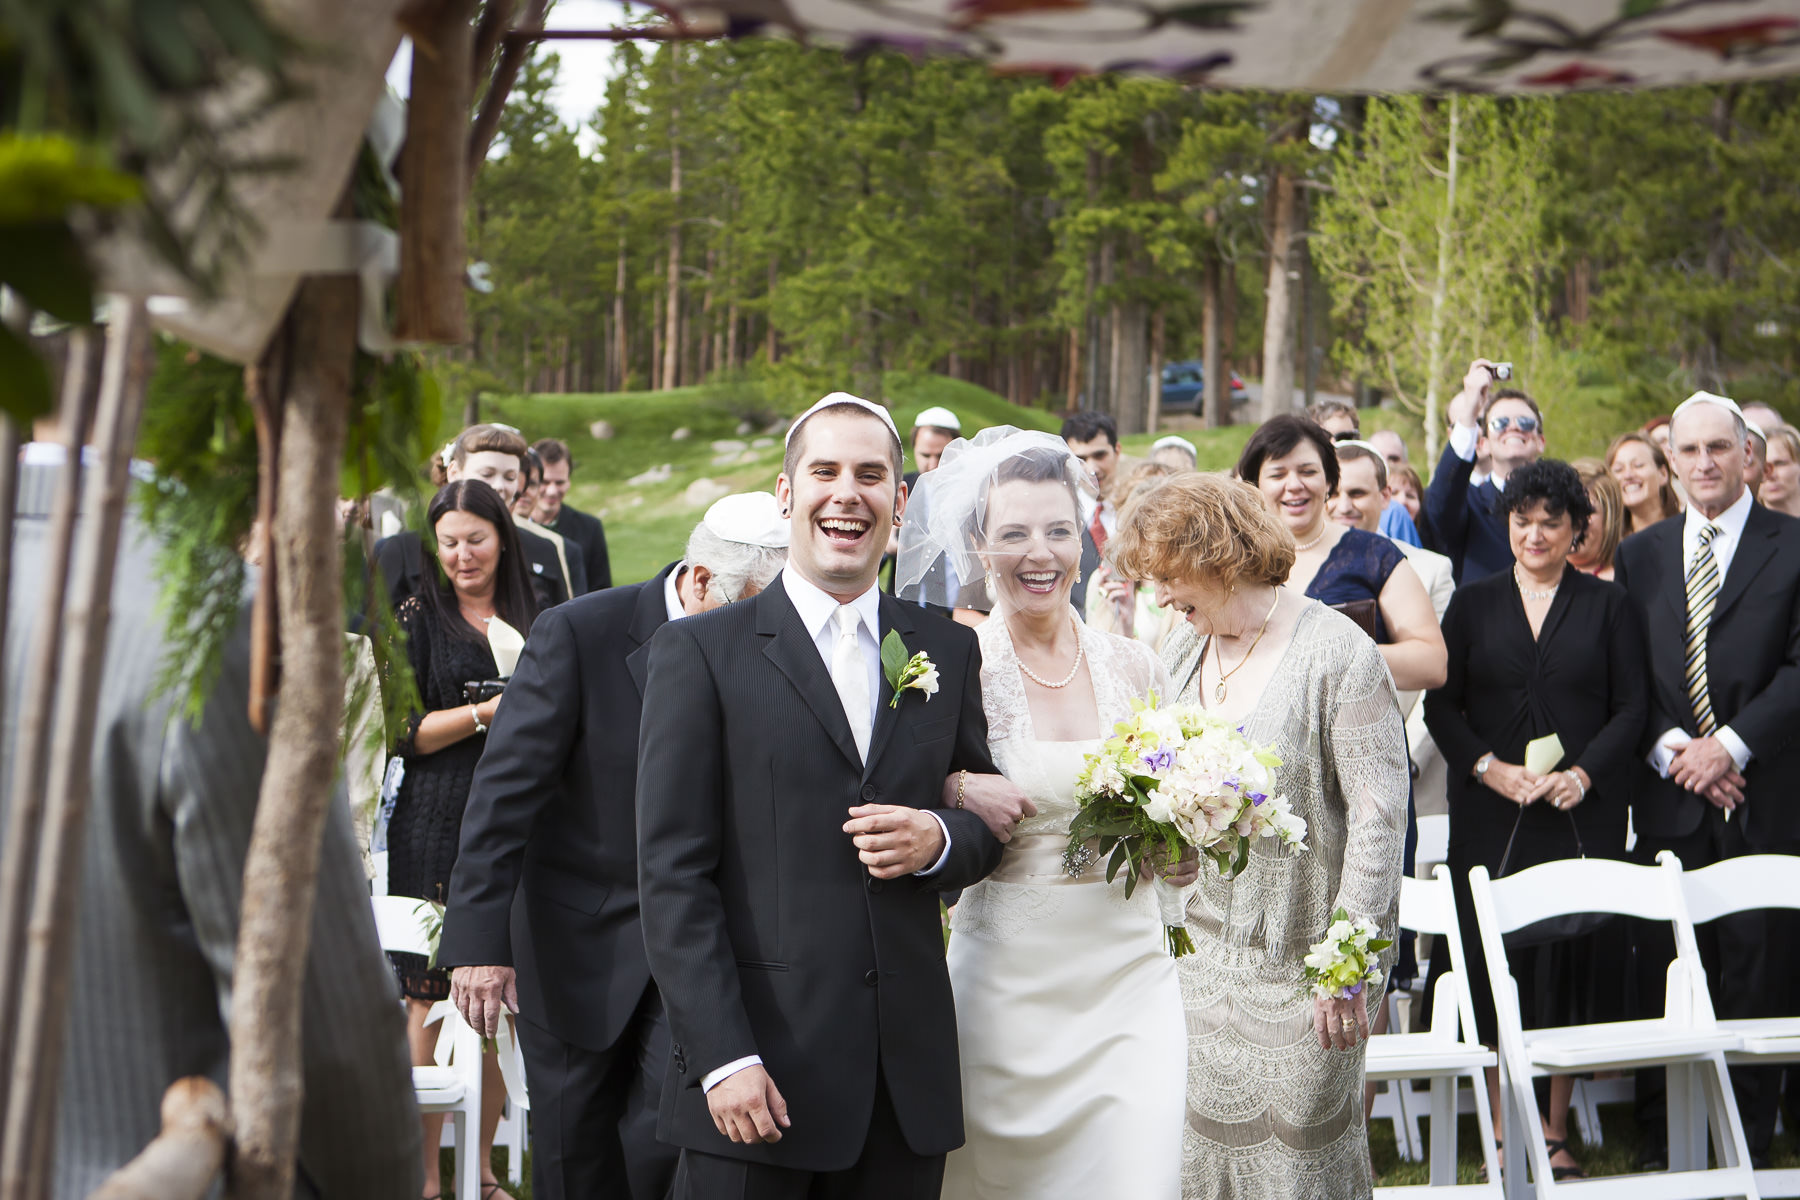 Their Ceremony Was Wonderfully Intimate And Filled With Shutterbug Wedding Guests Special Thanks To Contributing Photographer Kent Meireis